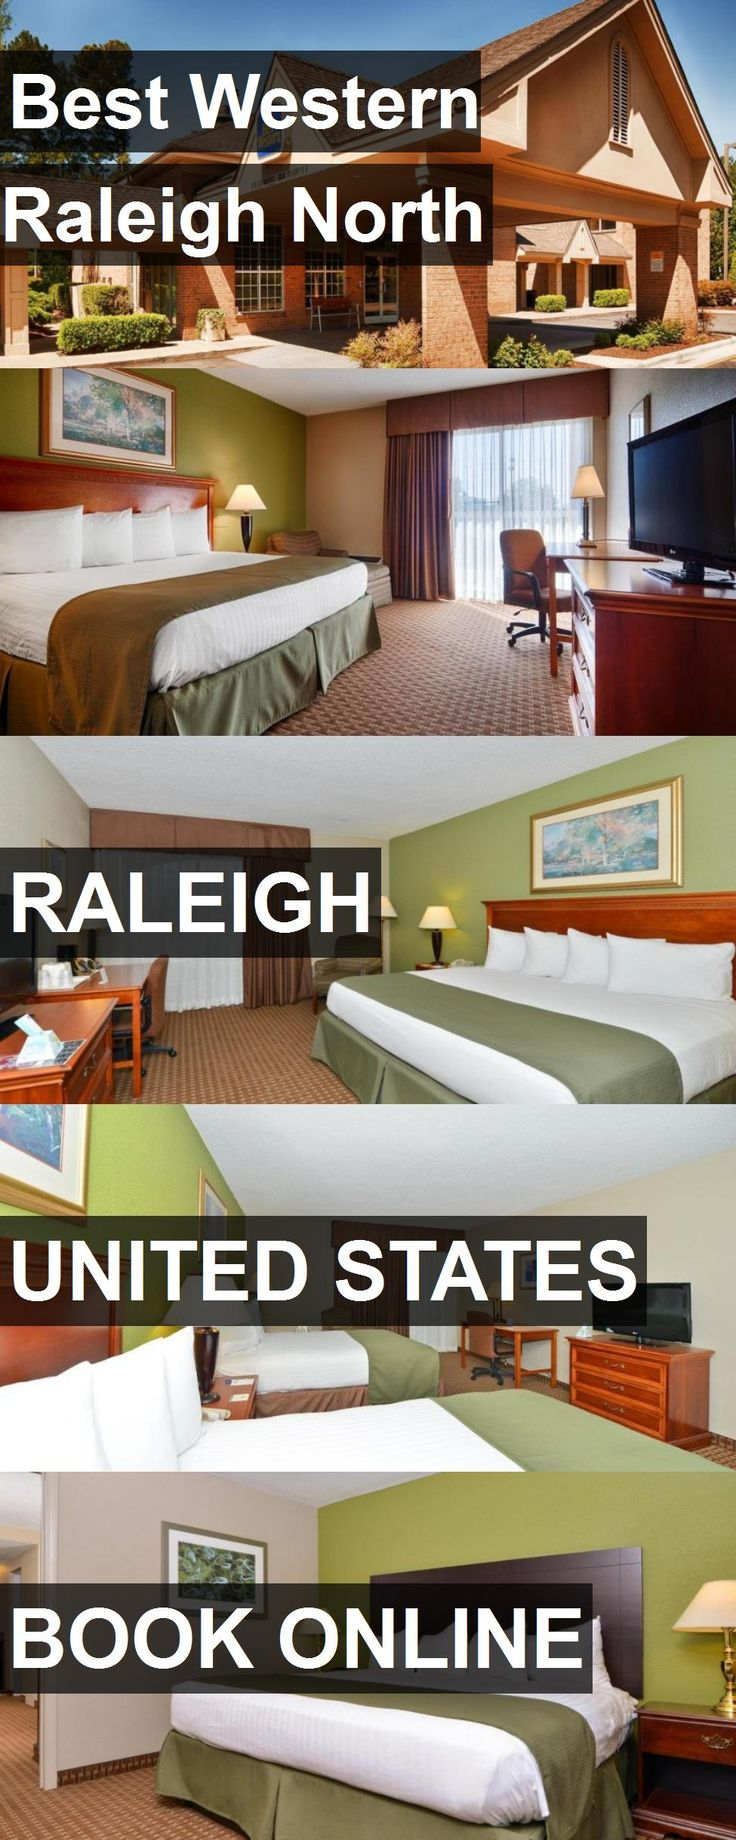 Hotel Best Western Raleigh North in Raleigh, United States. For more information, photos, reviews and best prices please follow the link. #UnitedStates #Raleigh #BestWesternRaleighNorth #hotel #travel #vacation